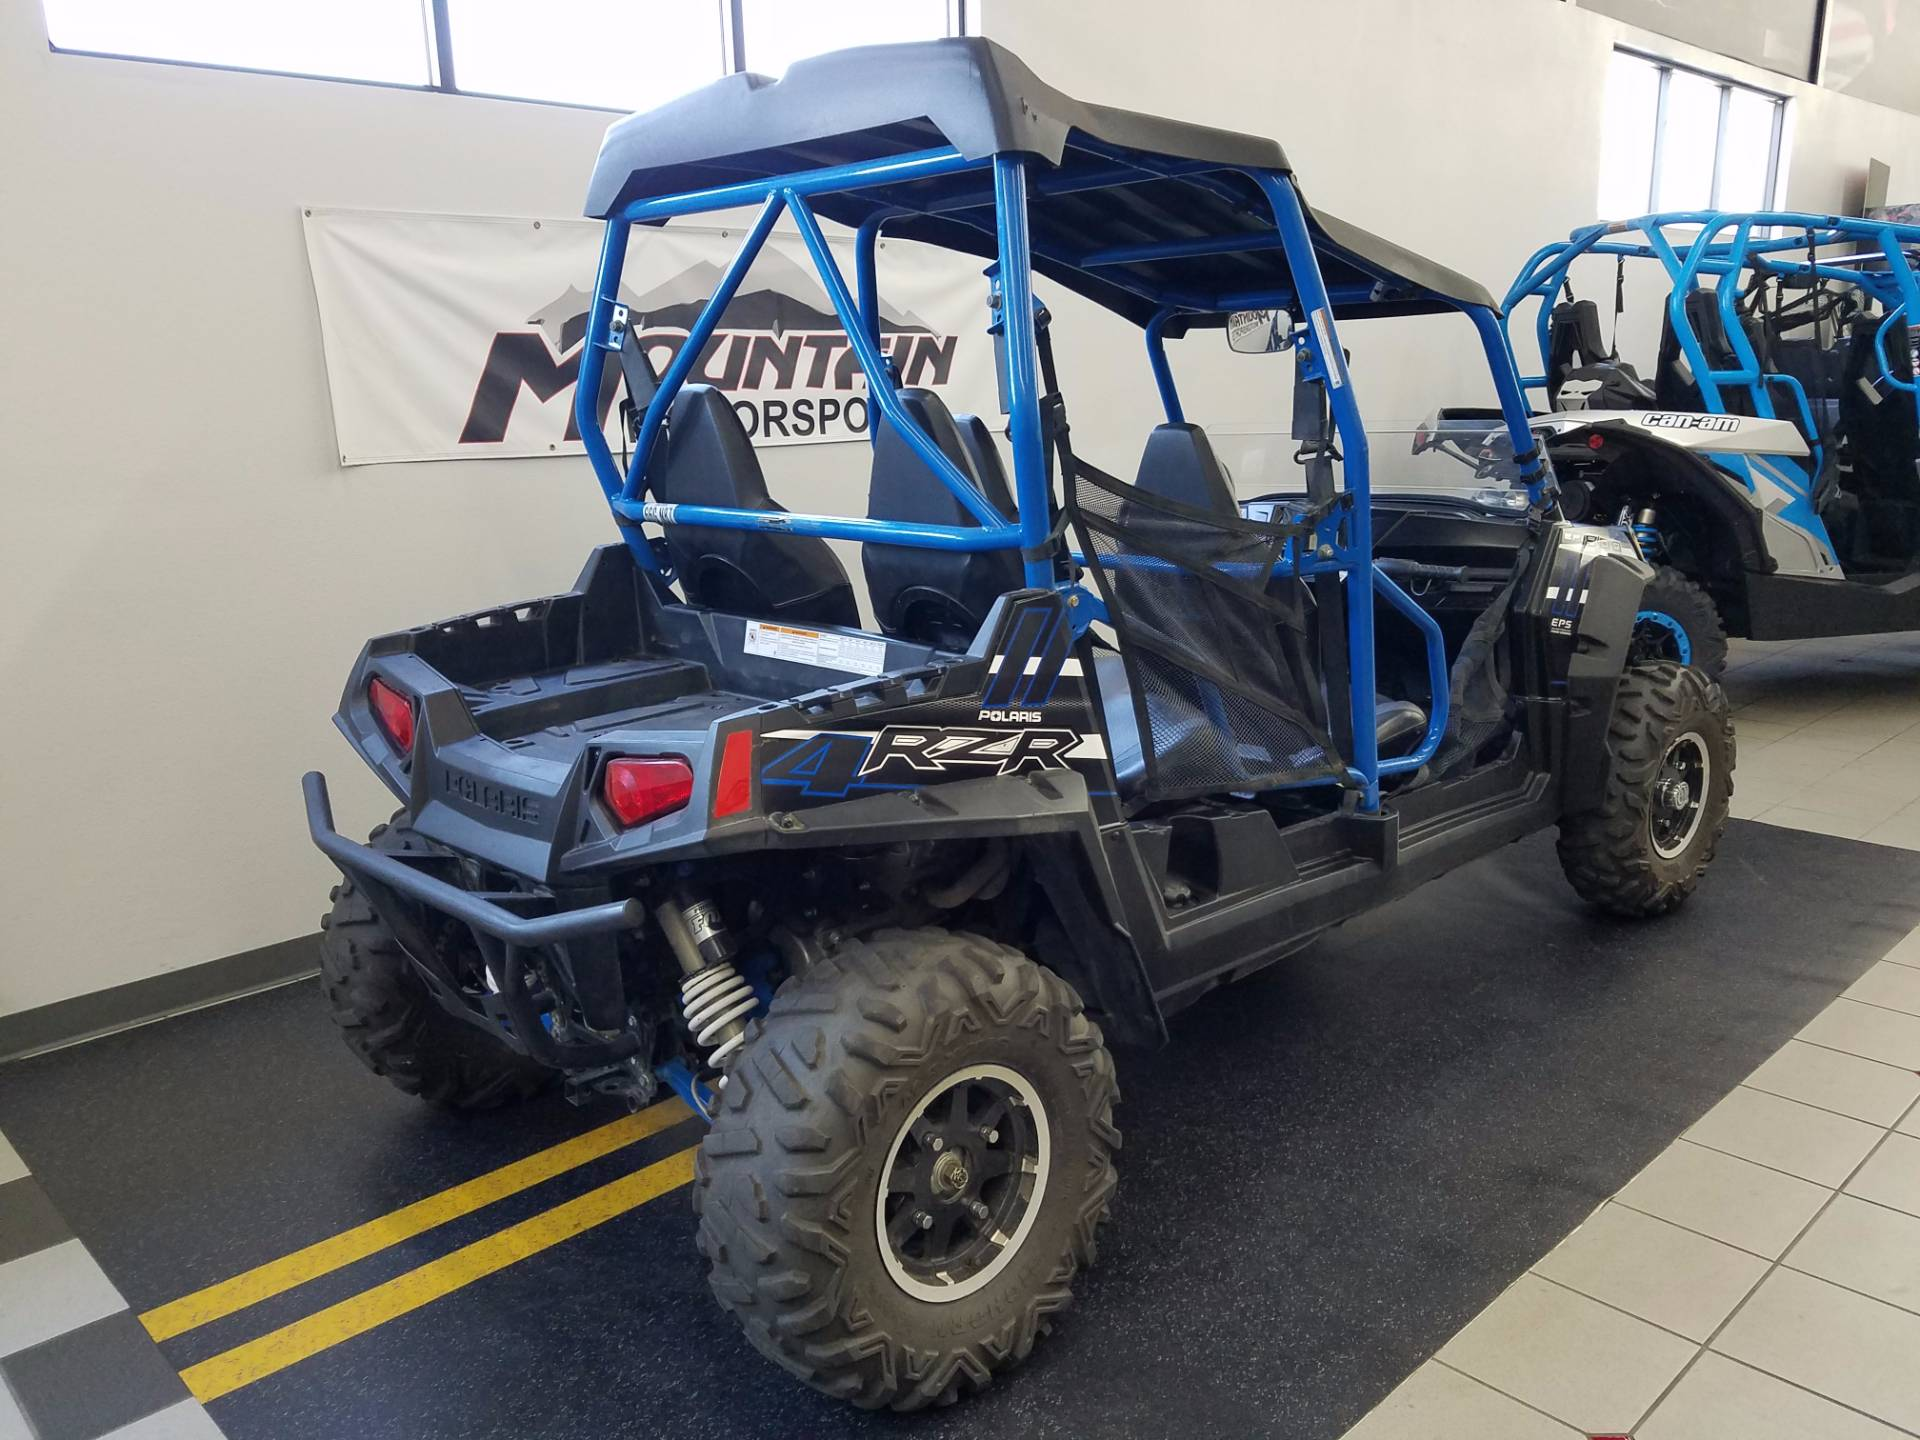 2014 polaris rzr 4 800 eps le rzr 4 seat los angeles new used boats motorcycles for sale. Black Bedroom Furniture Sets. Home Design Ideas